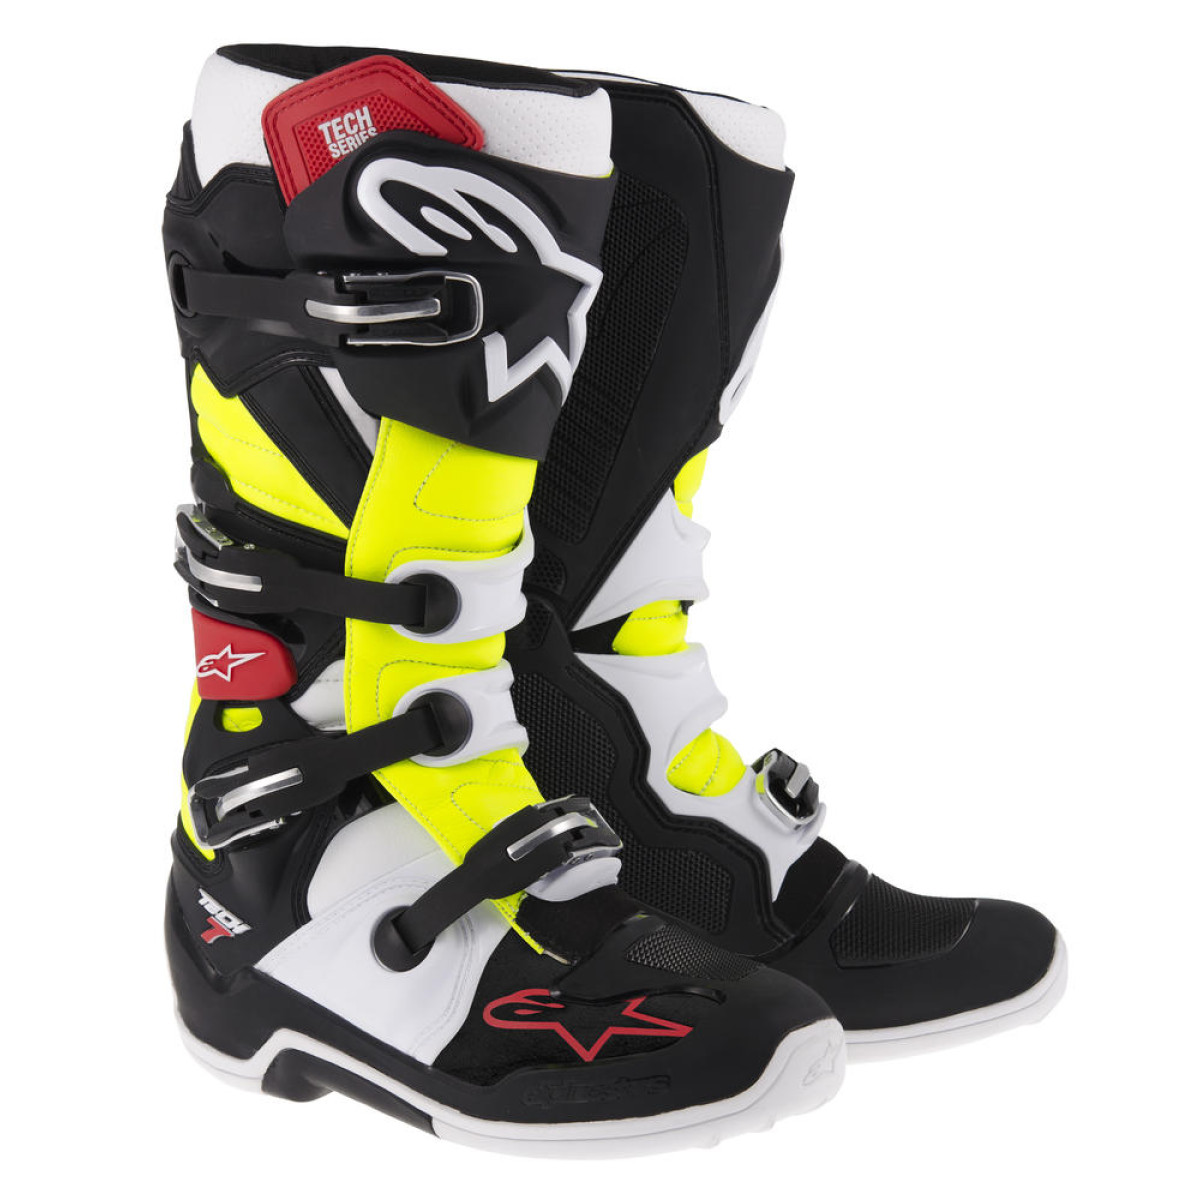 Botas Alpinestar tech 7 black red yellow